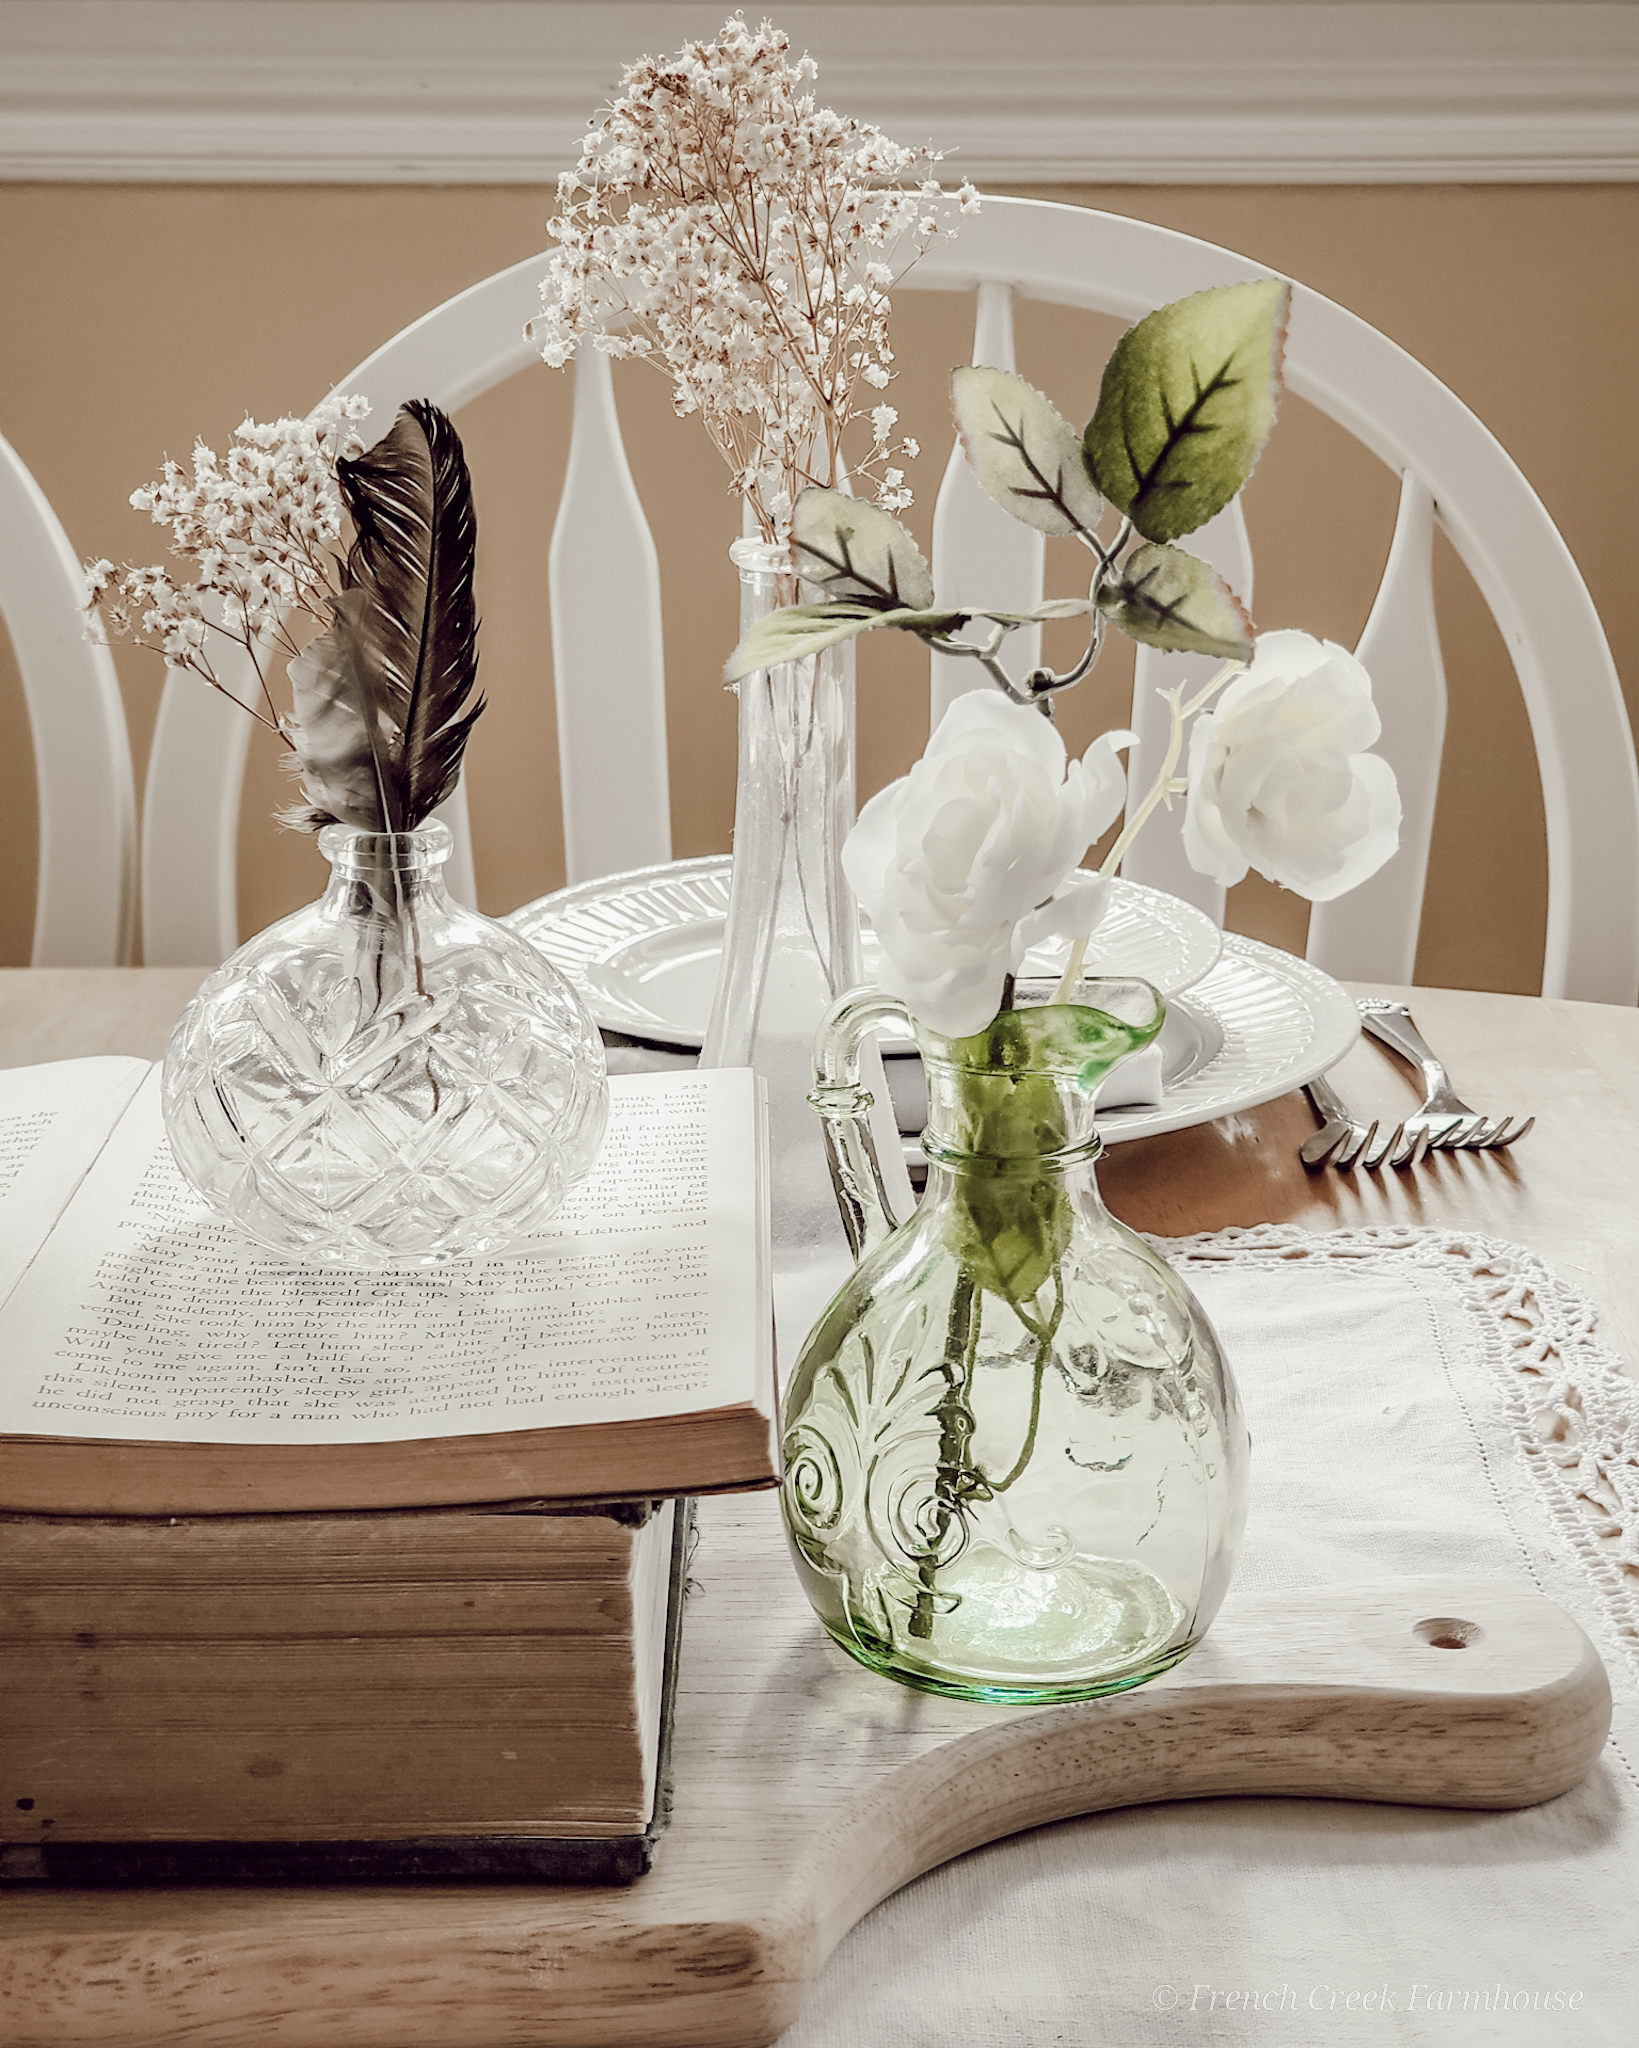 Small vintage glass vases filled with baby's breath as a centerpiece